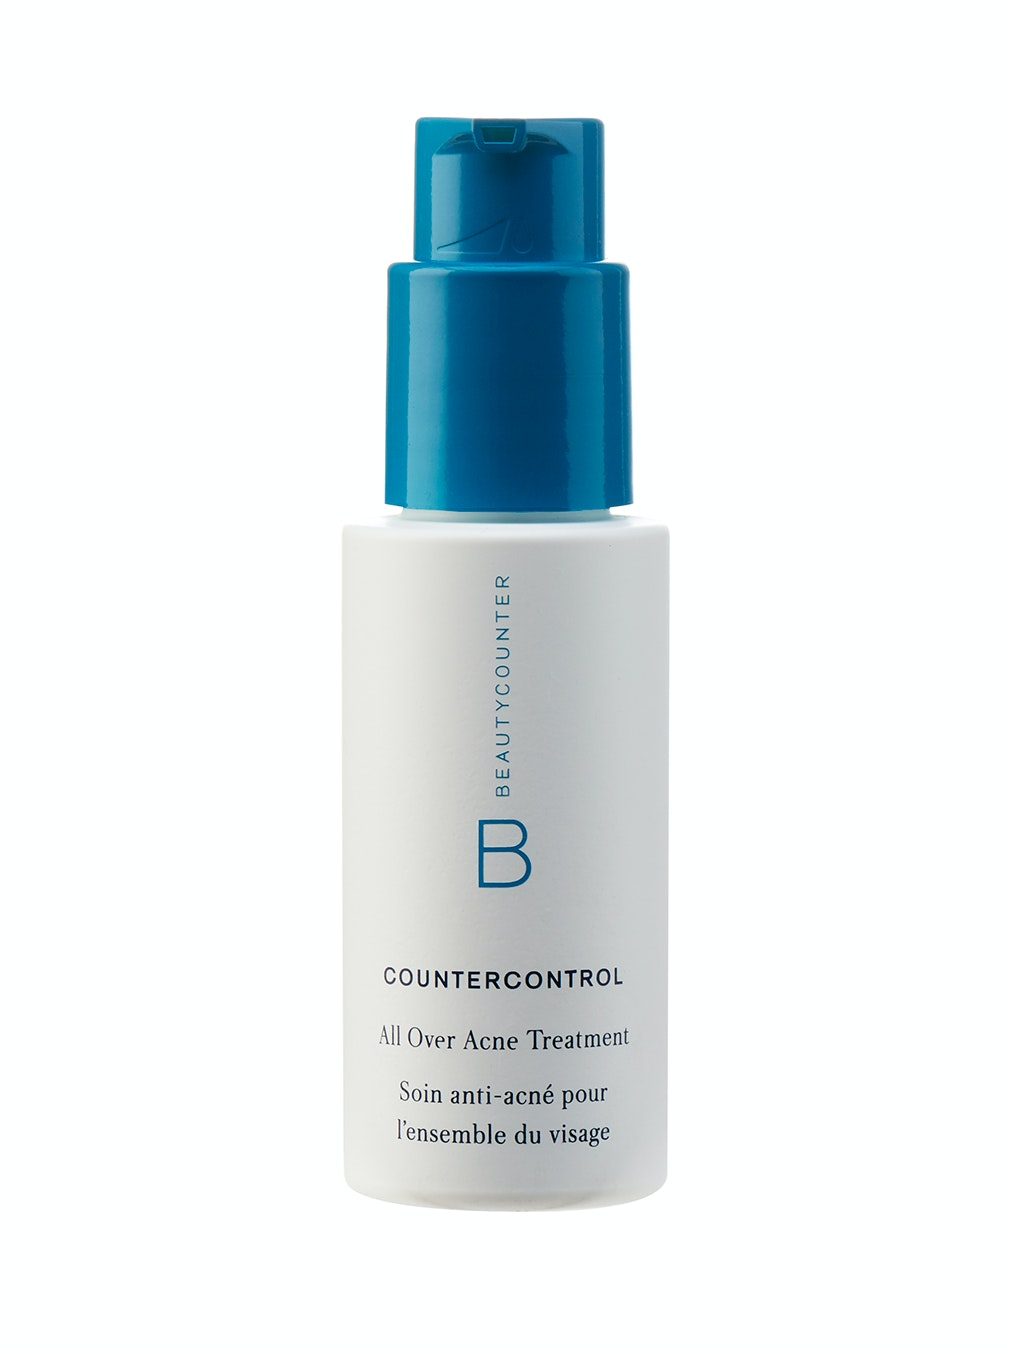 Countercontrol All Over Acne Treatment Salicylic Acid